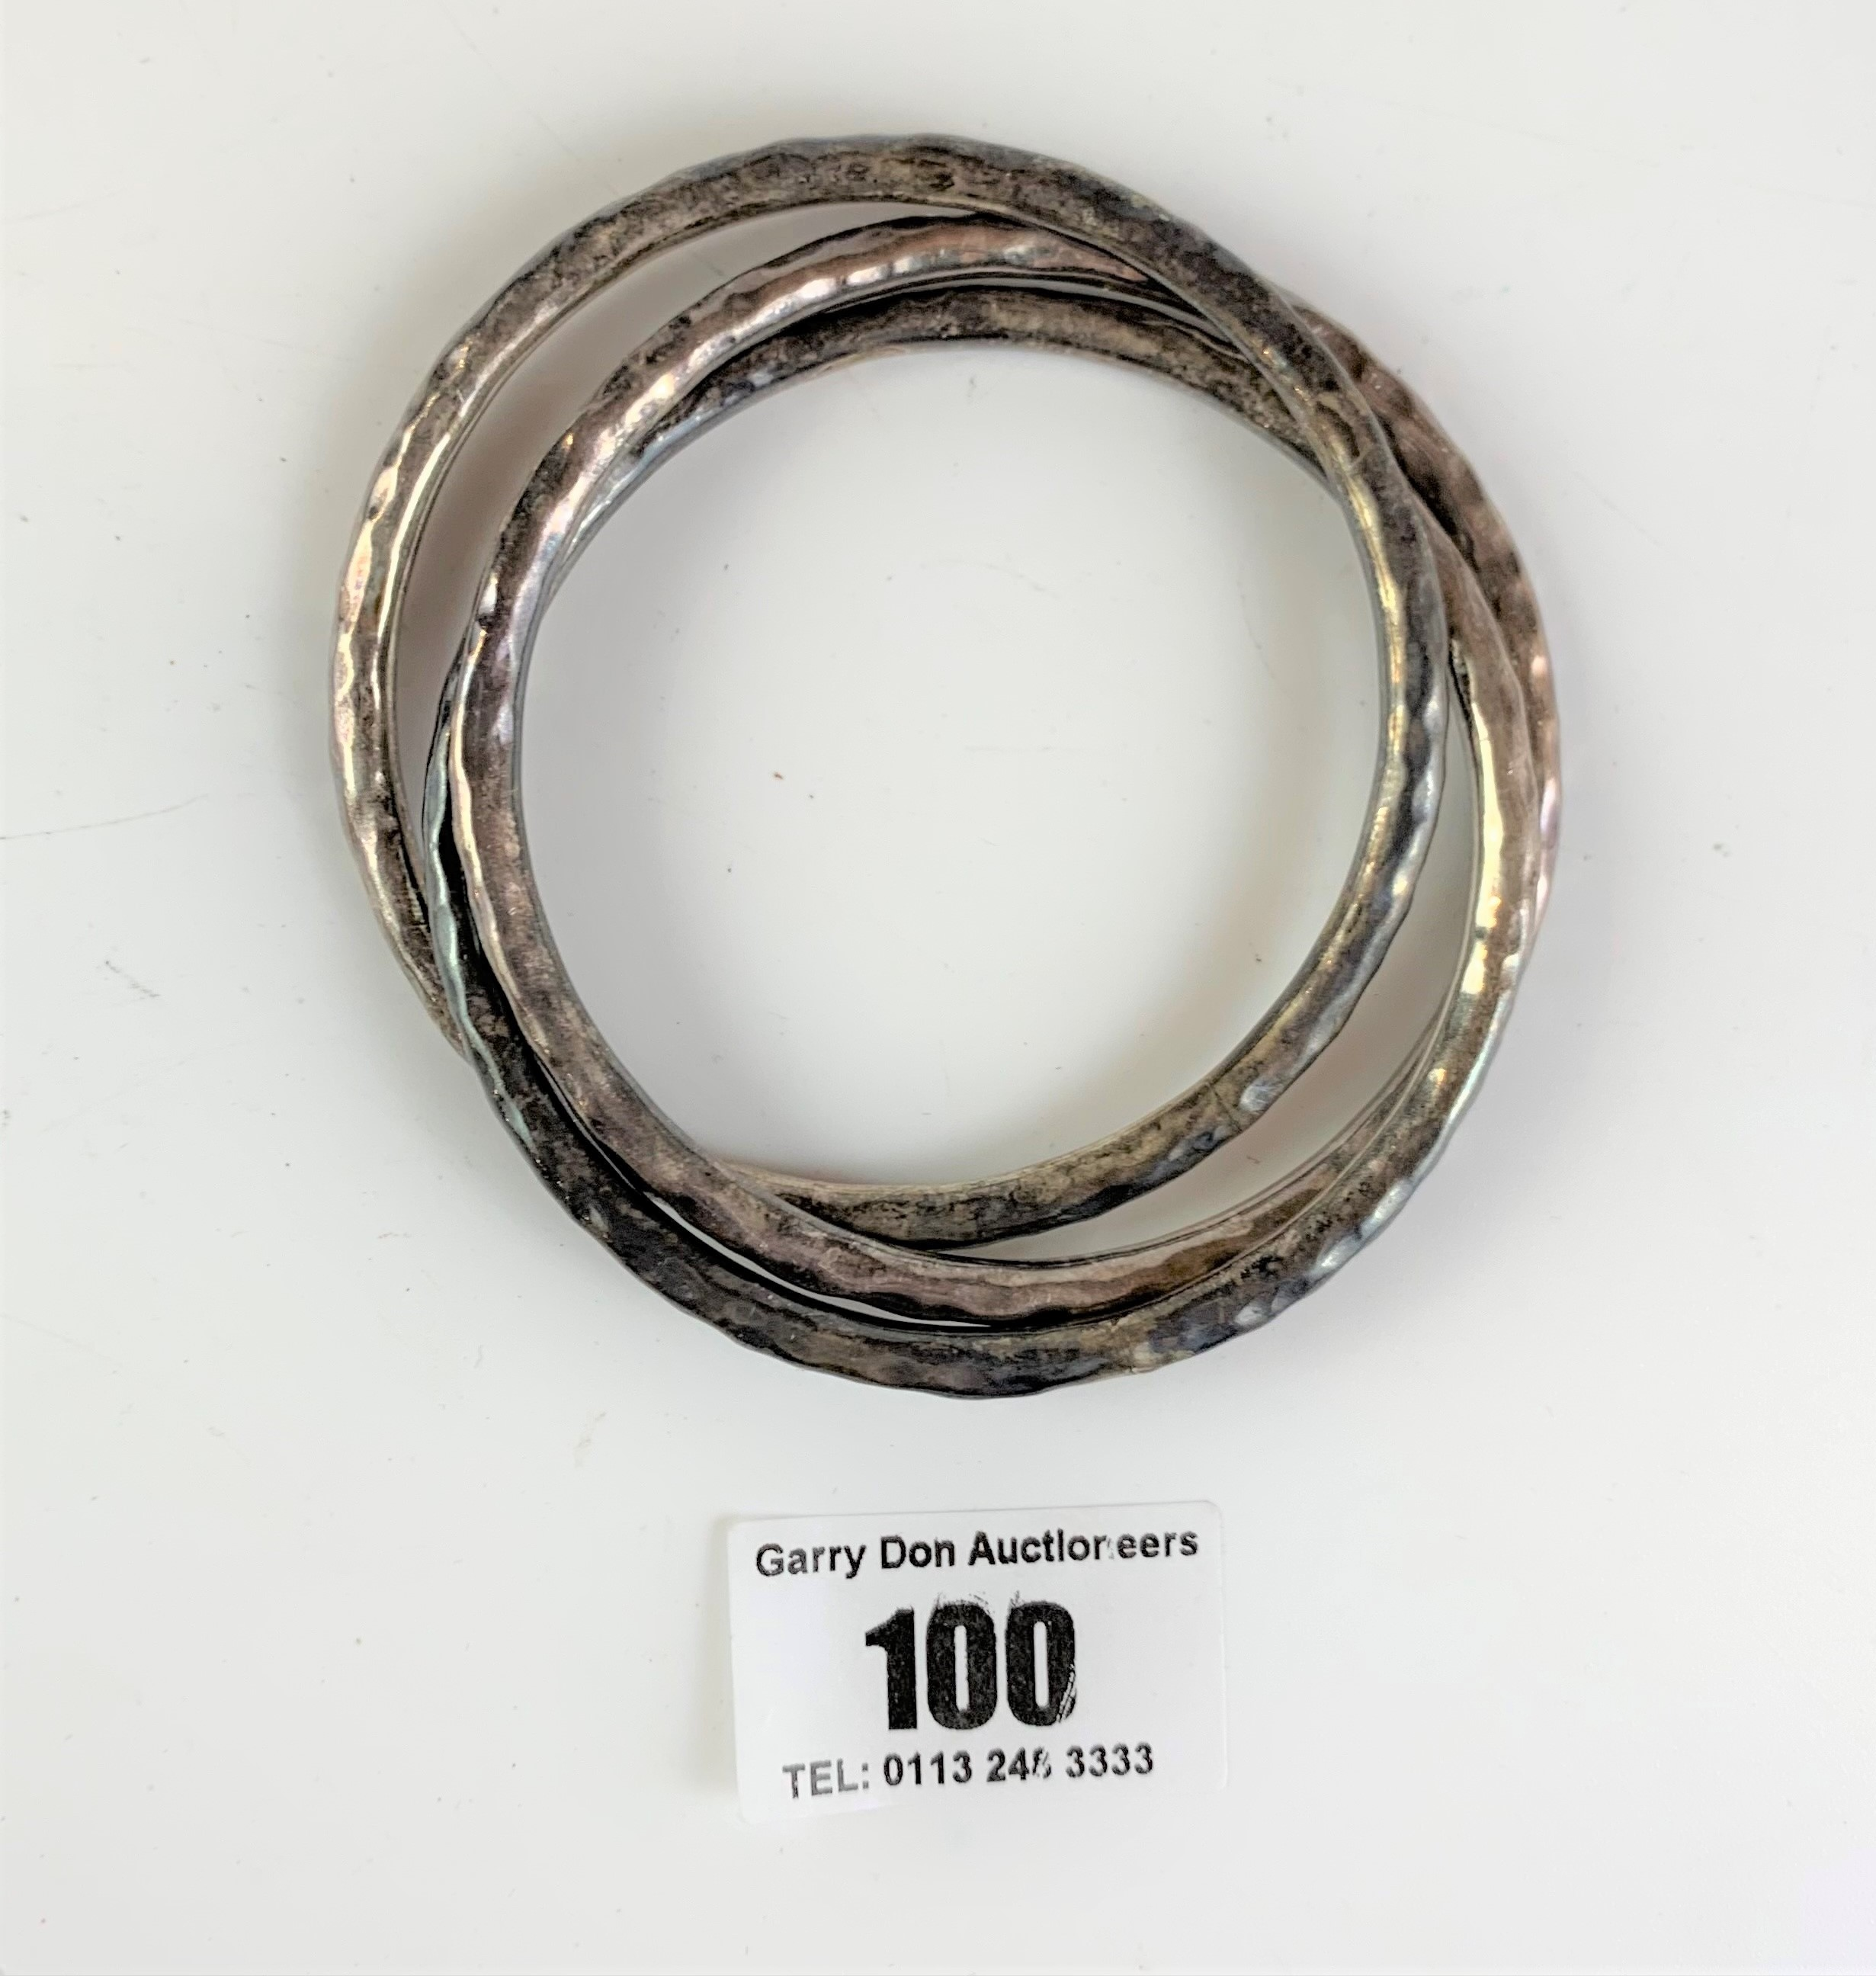 3 interlocked silver bangles, total w: 1.5 ozt - Image 2 of 3